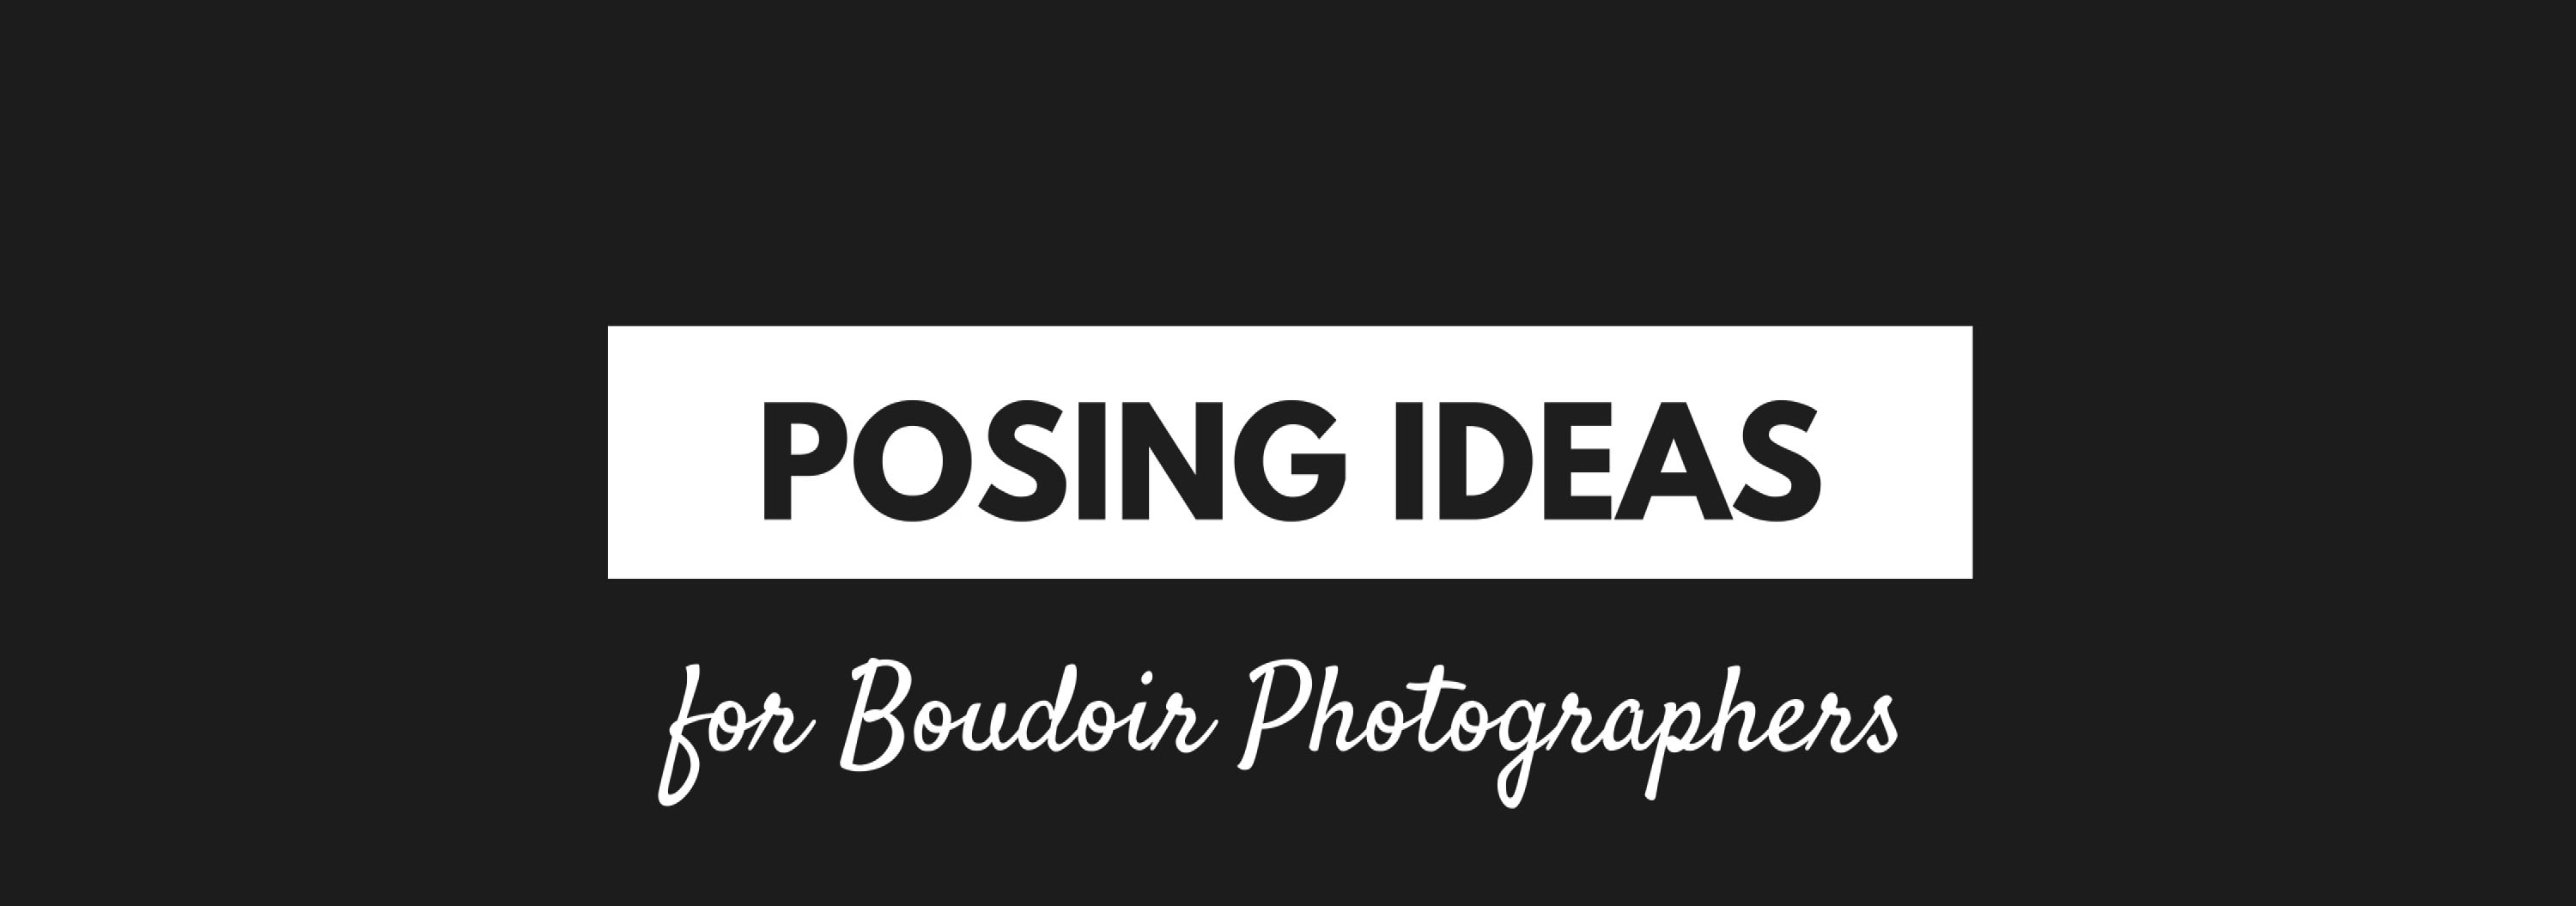 Photography Tips For Photographers And Posing Guides Marketing Templates Contracts Forms Photo Actions Lightroom Presets Tutorials